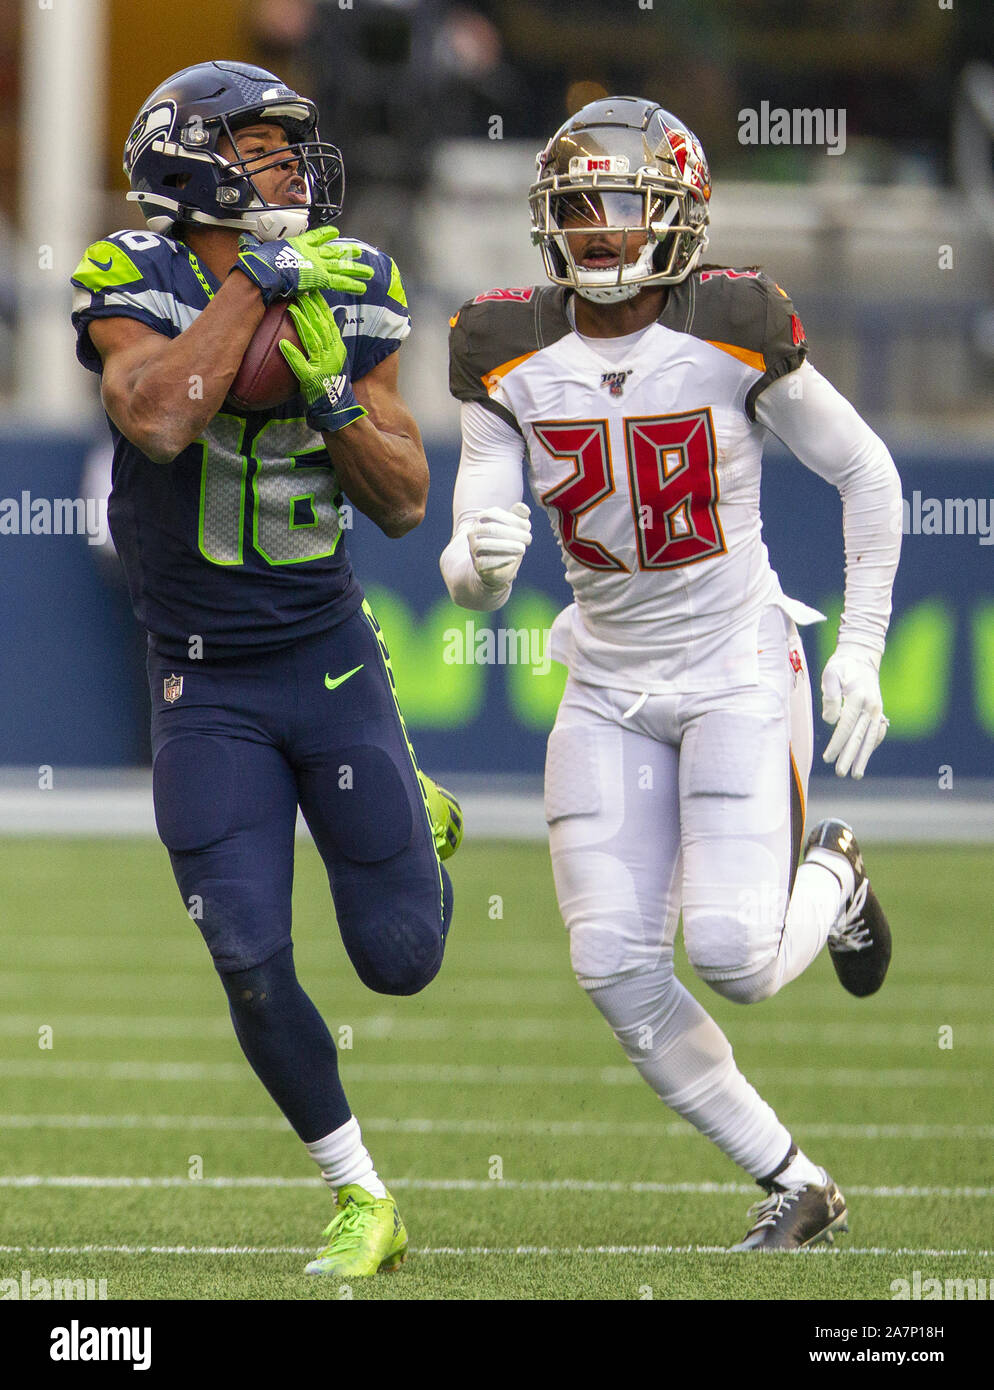 Seattle, United States. 03rd Nov, 2019. Seattle Seahawks wide receiver Tyler Lockett (16) hauls in a 30-yard pass against Tampa Bay Buccaneers cornerback Vernon III Hargreaves (28) during the fourth quarter at CenturyLink Field on Sunday, November 3, 2019 in Seattle, Washington. The Seahawks beat the Buccaneers 40-34 in overtime. Jim Bryant Photo/UPI Credit: UPI/Alamy Live News Stock Photo